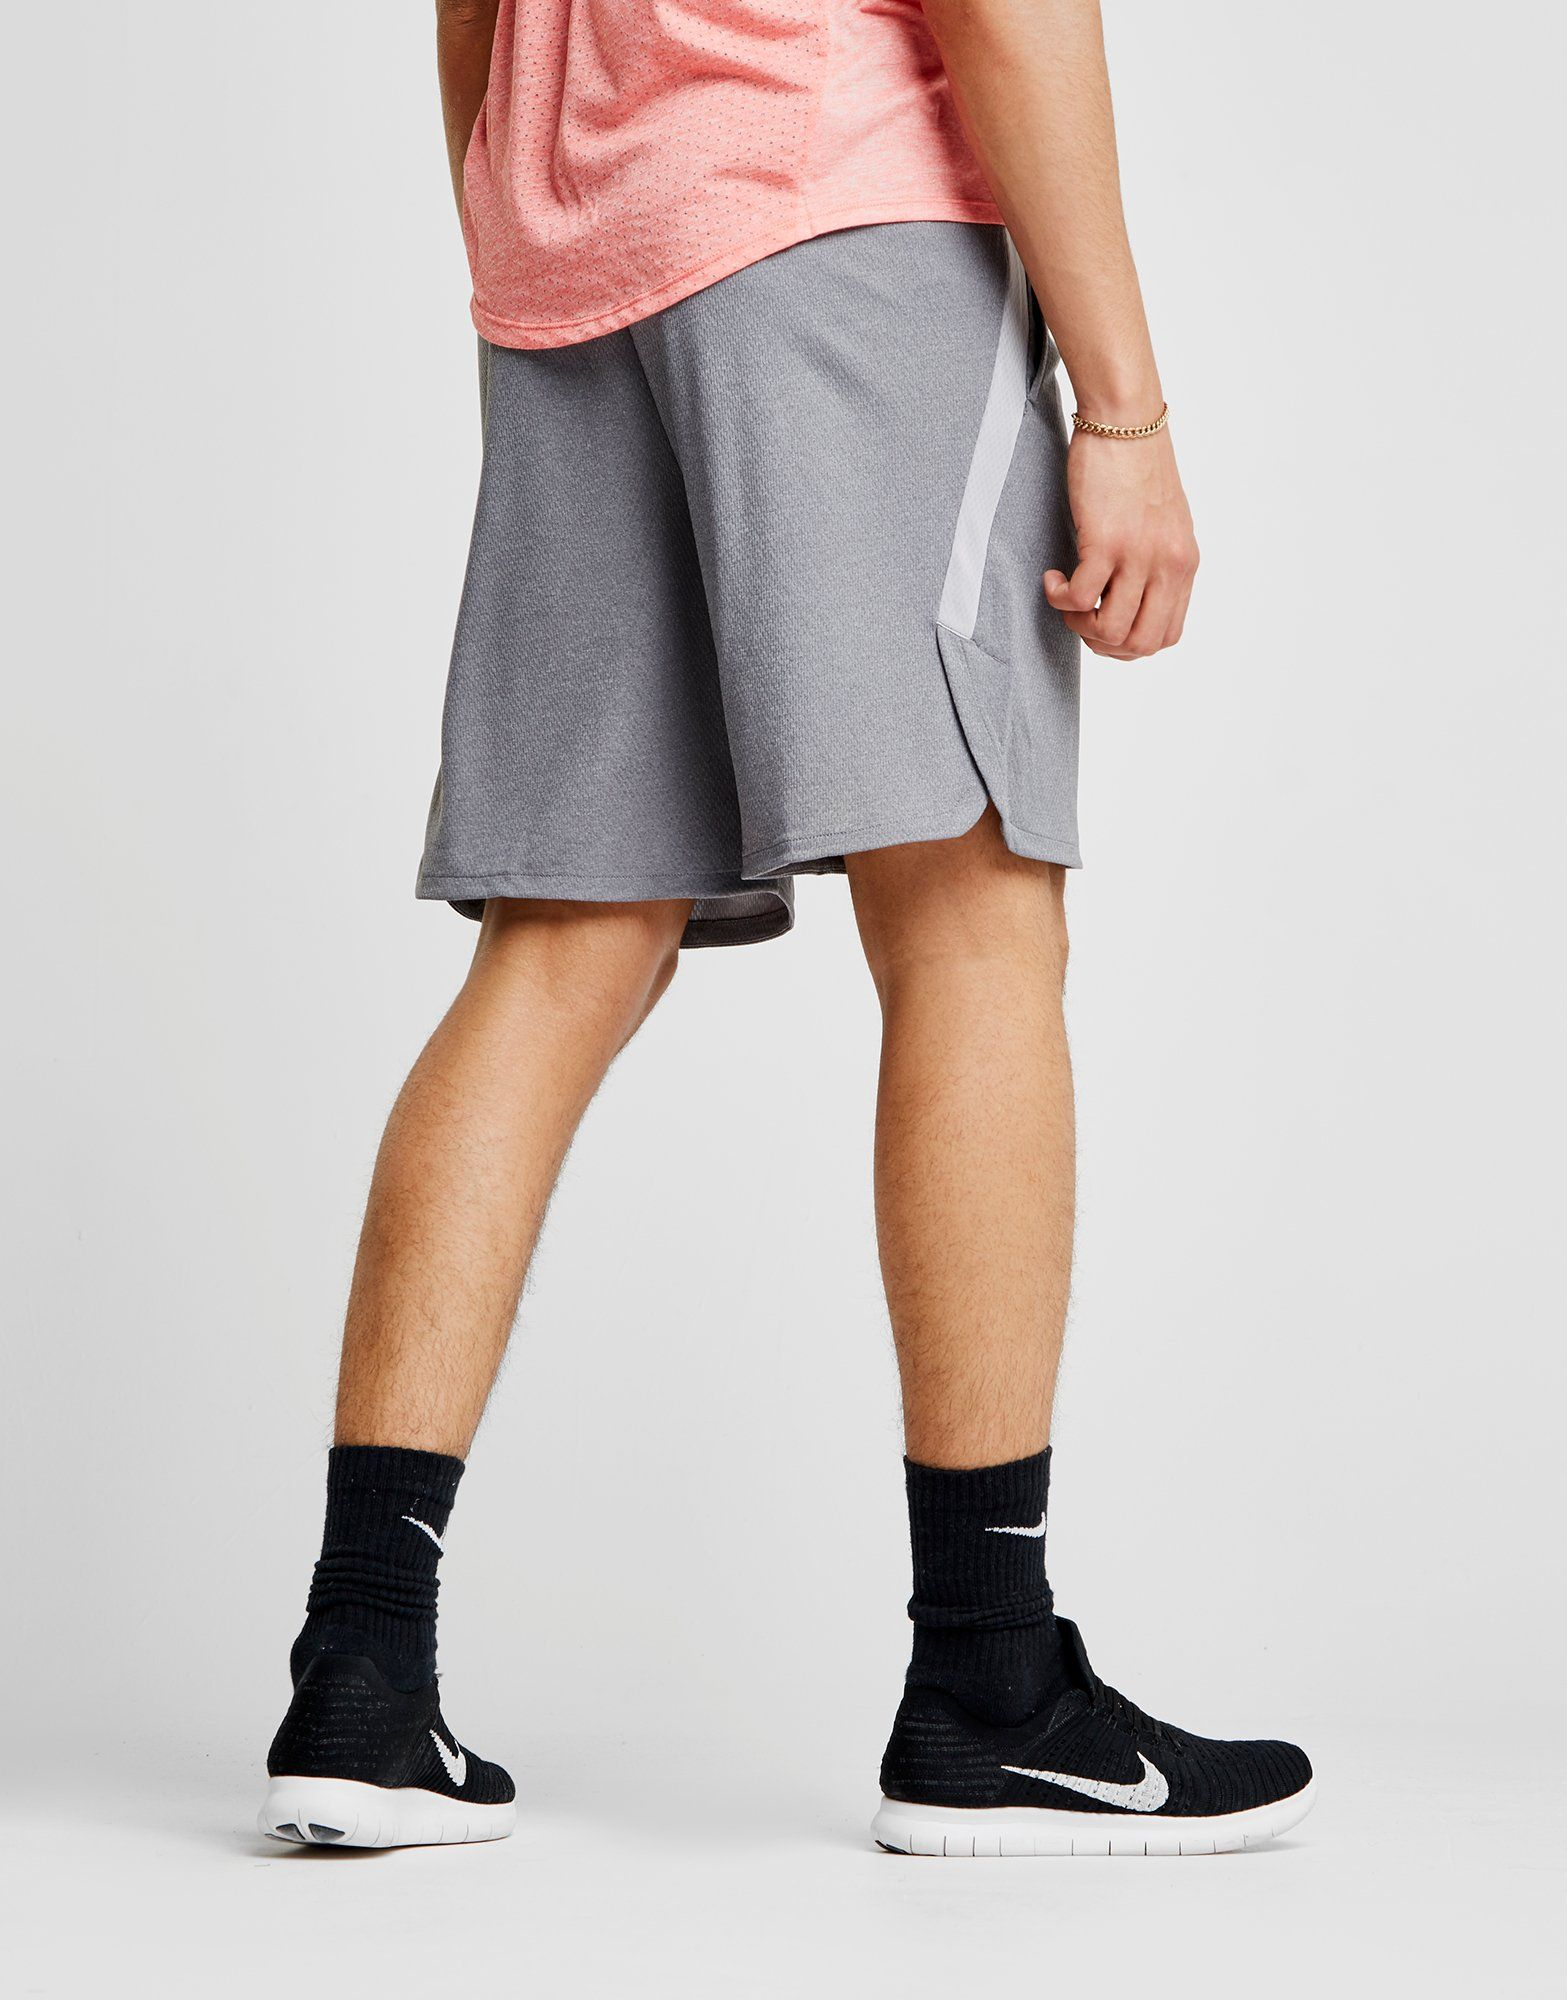 Nike Short Dry Poly Shorts 4.0 Homme -